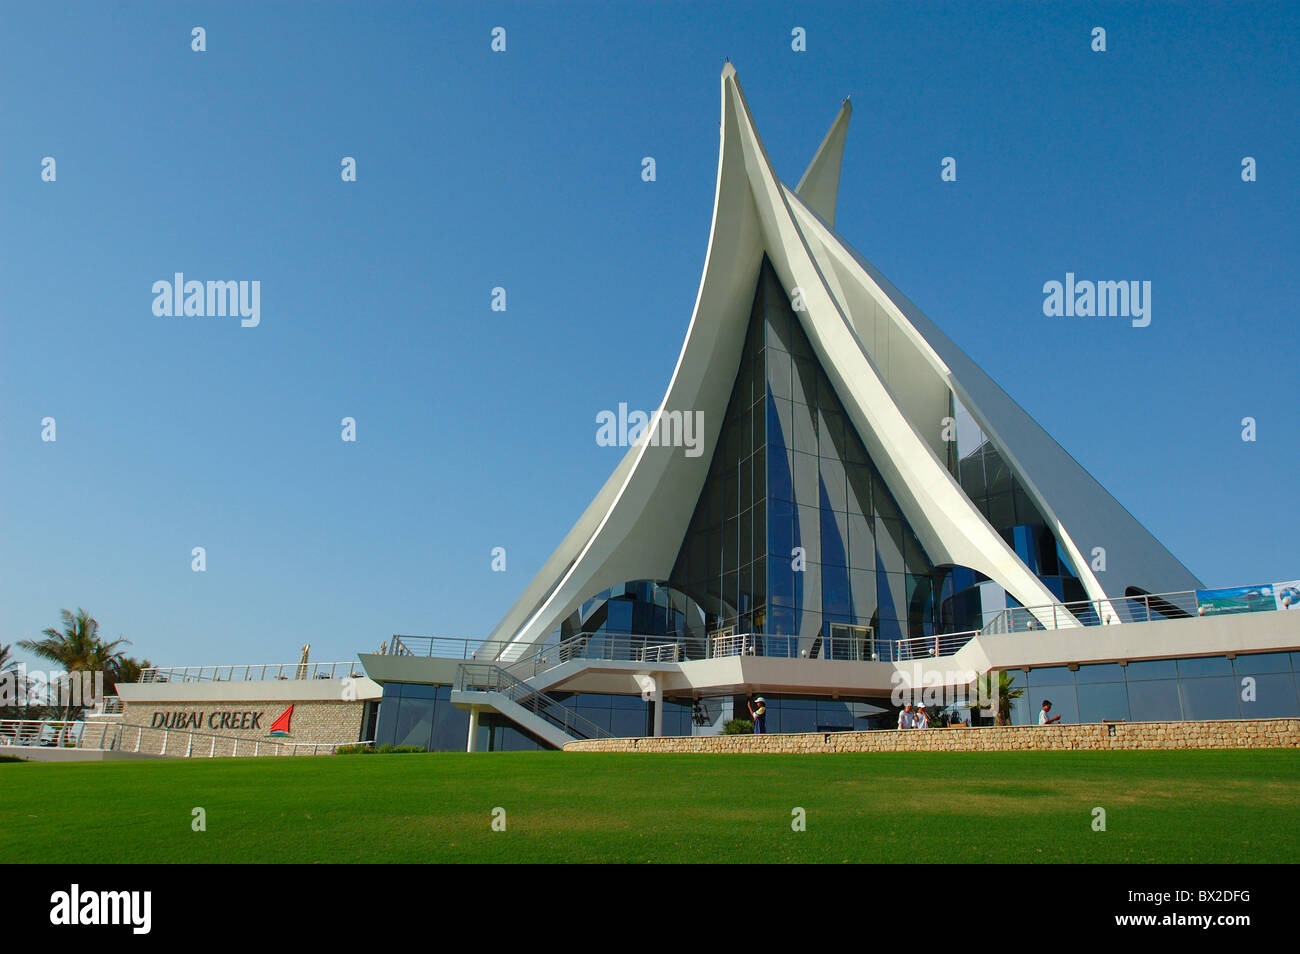 Golf Golf Course Club House Modern Architecture Dubai Creek Golf